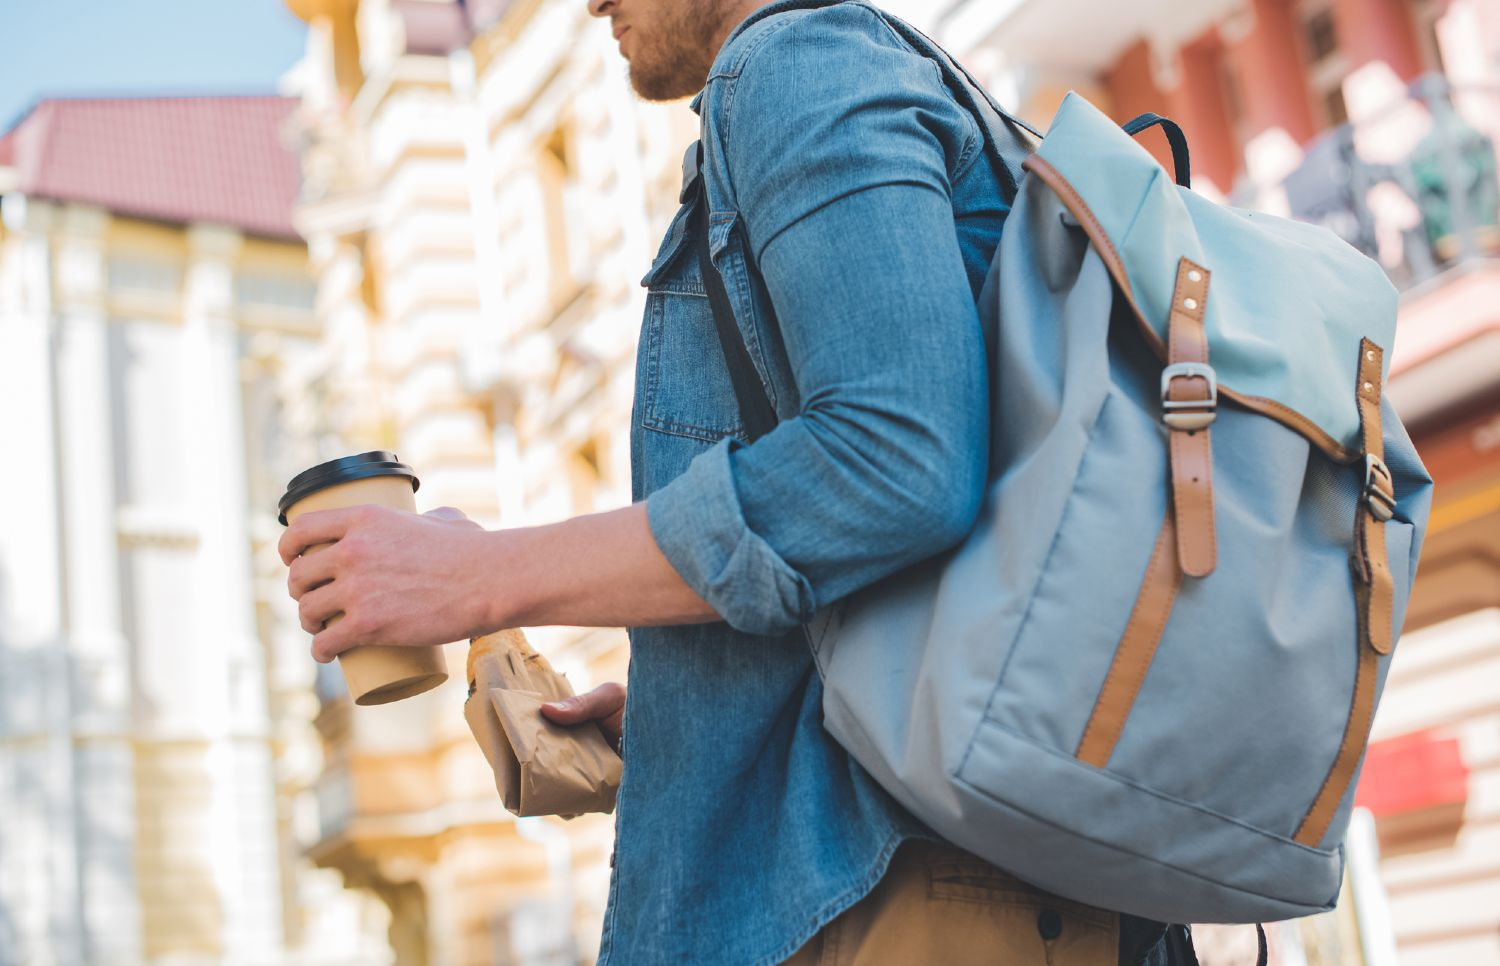 Man commuting through the city with his backpack and a cup of coffee